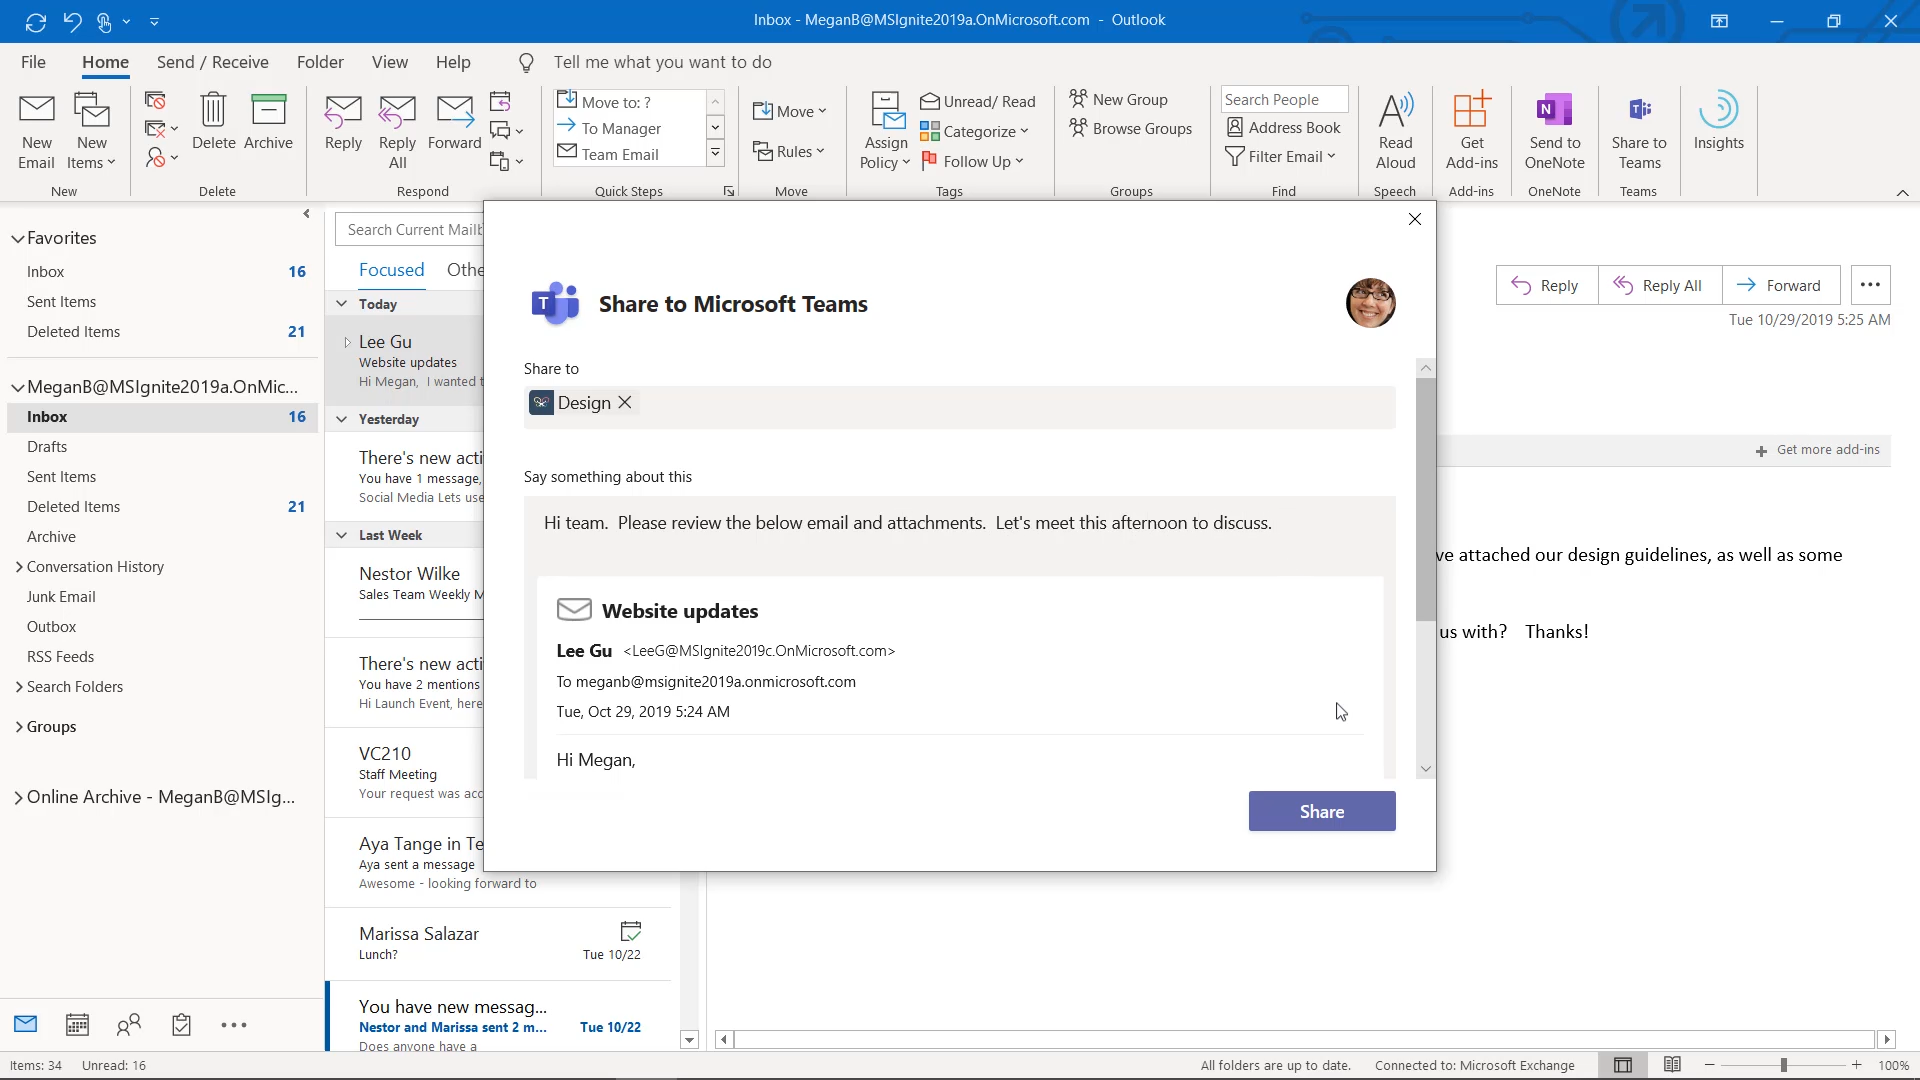 New integration between Outlook and Teams